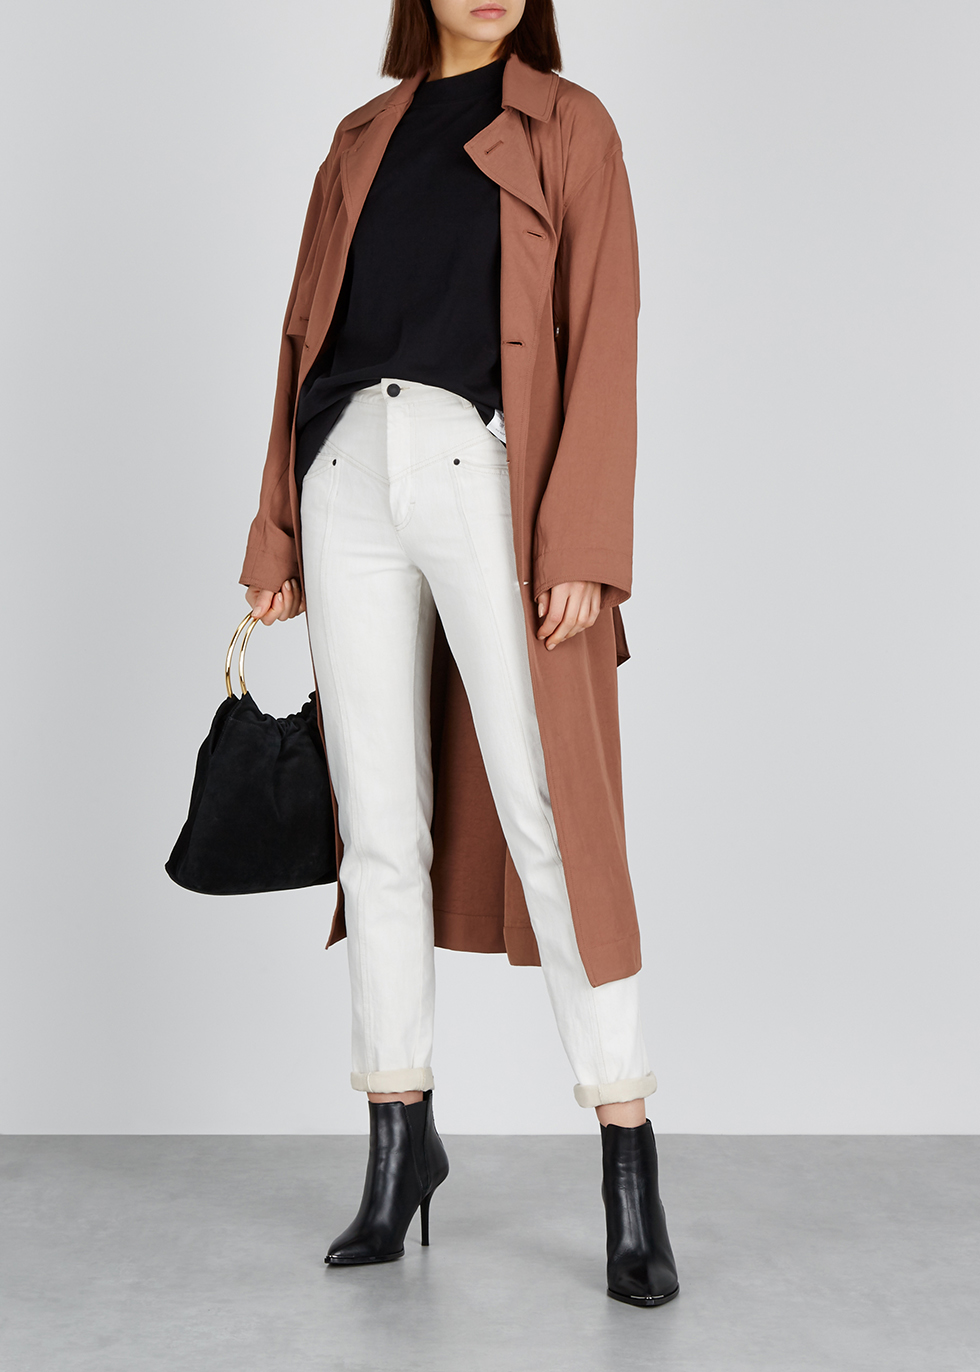 Olicia rust twill trench coat - Acne Studios